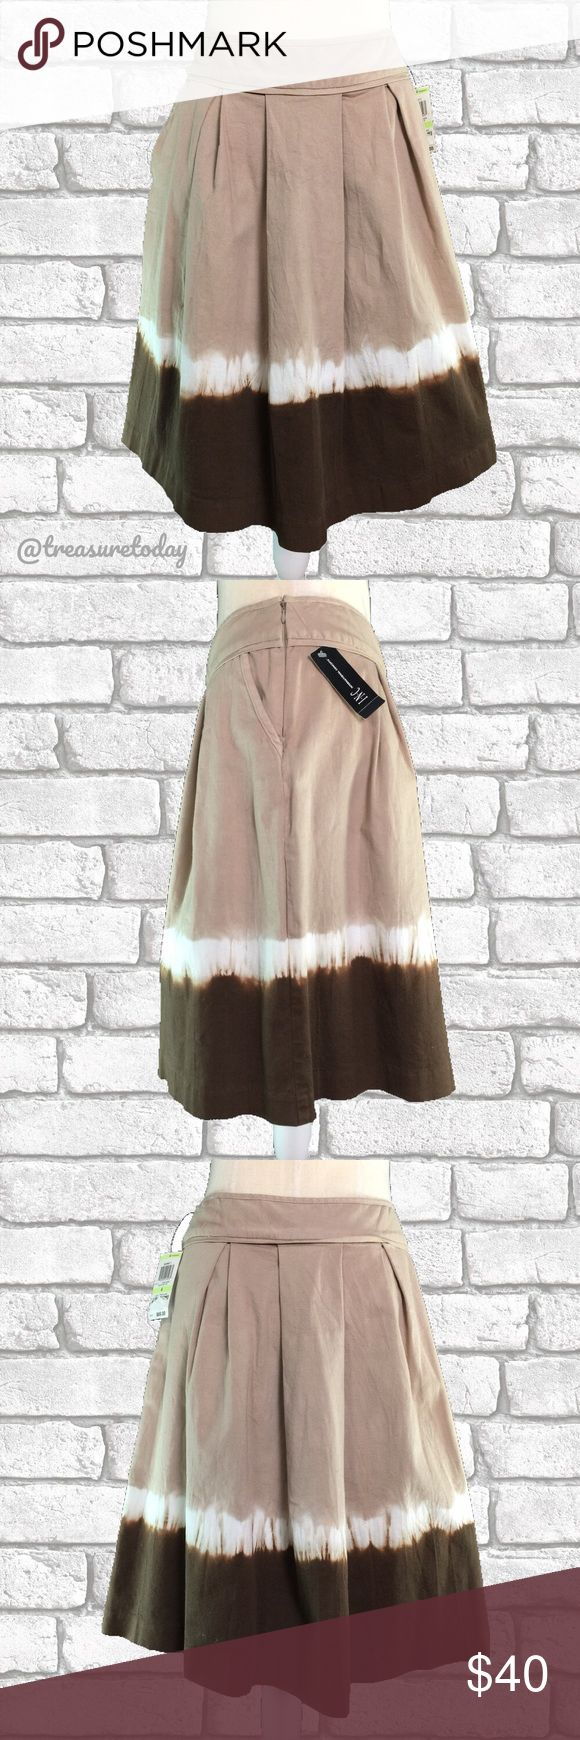 International Concepts Audrey Dip Dye Skirt NWT Brand new with tags. Audrey 1 Brown dip dye skirt. Beige white and brown colors. Zipper on the side. Knee length. Denim like fabric. Fits size 4 to 6. Feel free to ask questions. Bundle 2 or more items to get discount 💖 INC International Concepts Skirts A-Line or Full